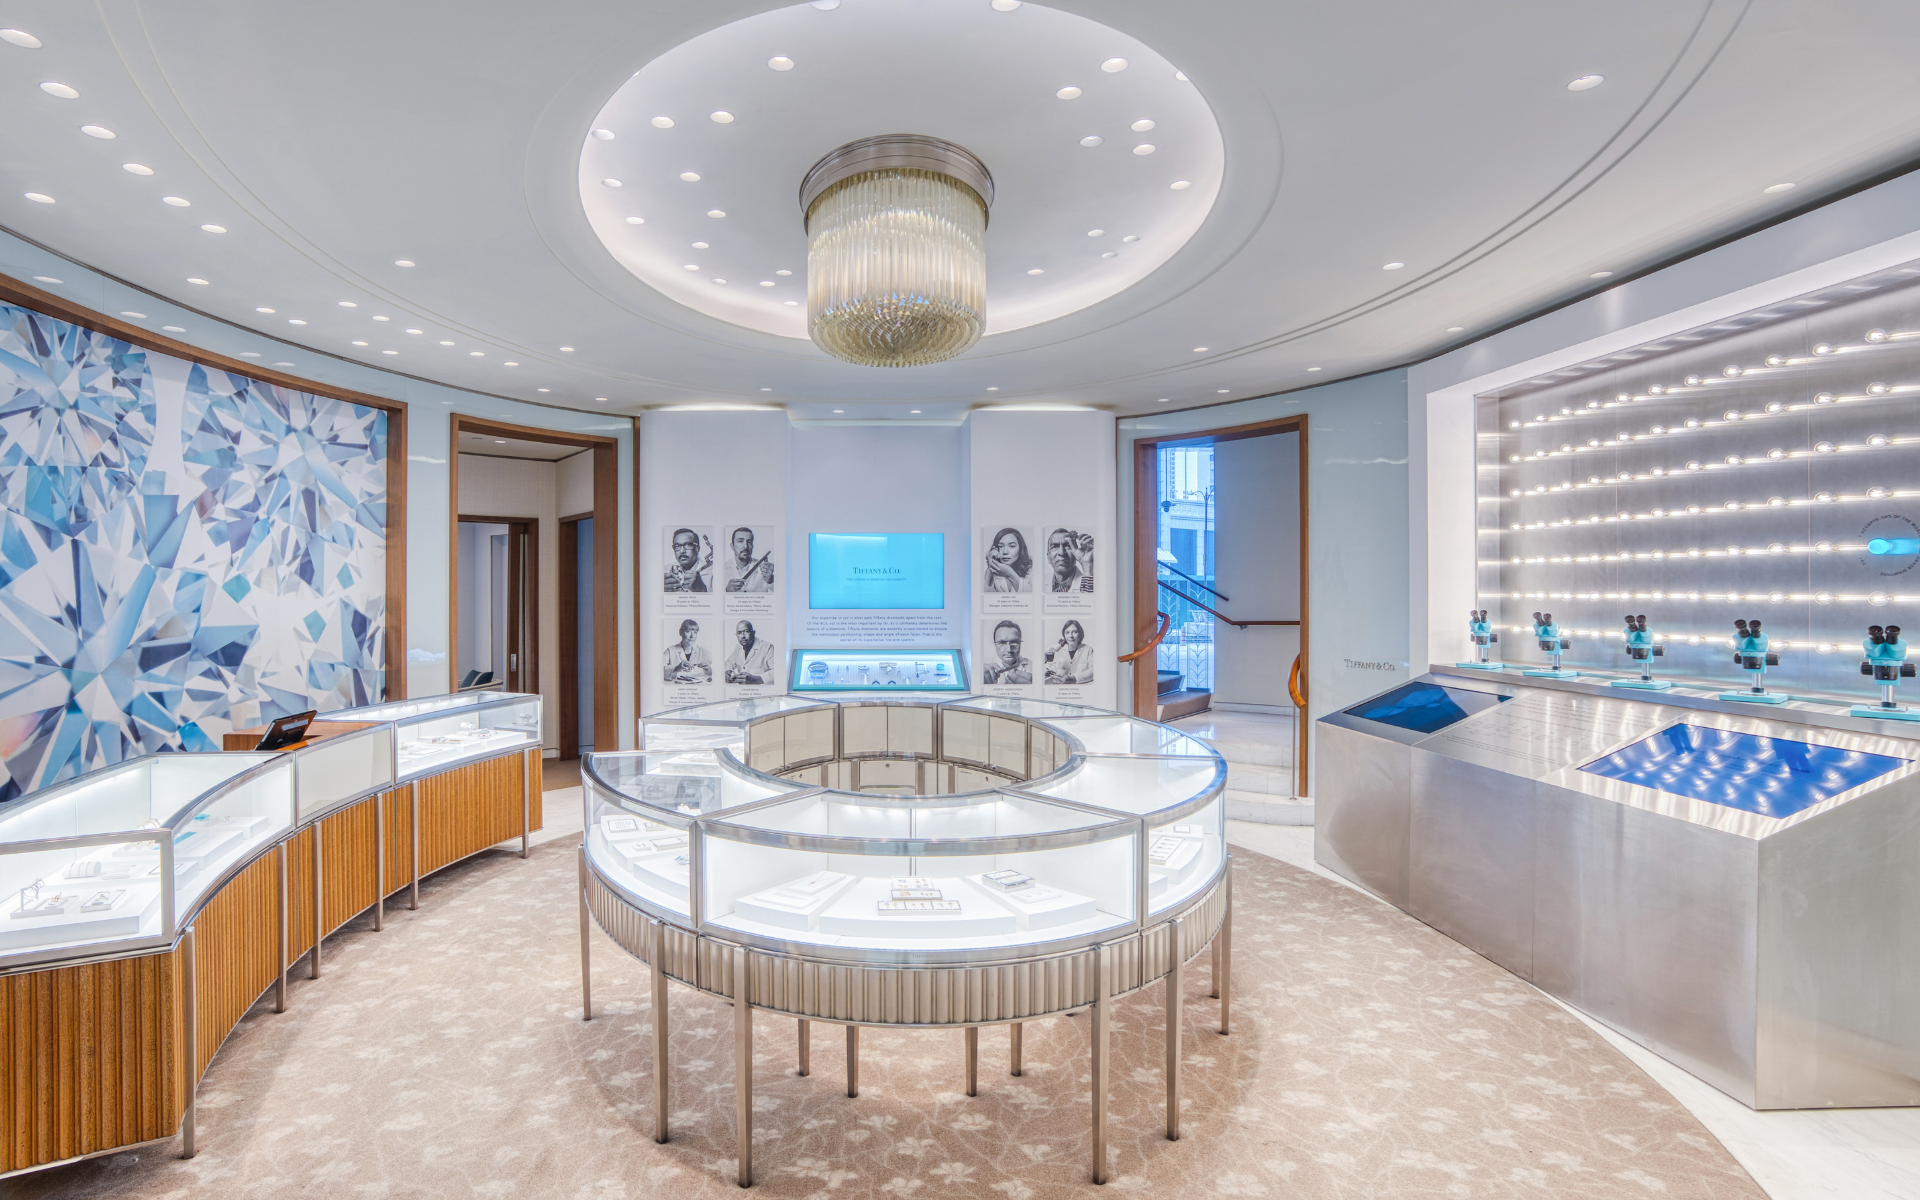 Discover The Journey Of A Tiffany & Co. Diamond At Suria KLCC